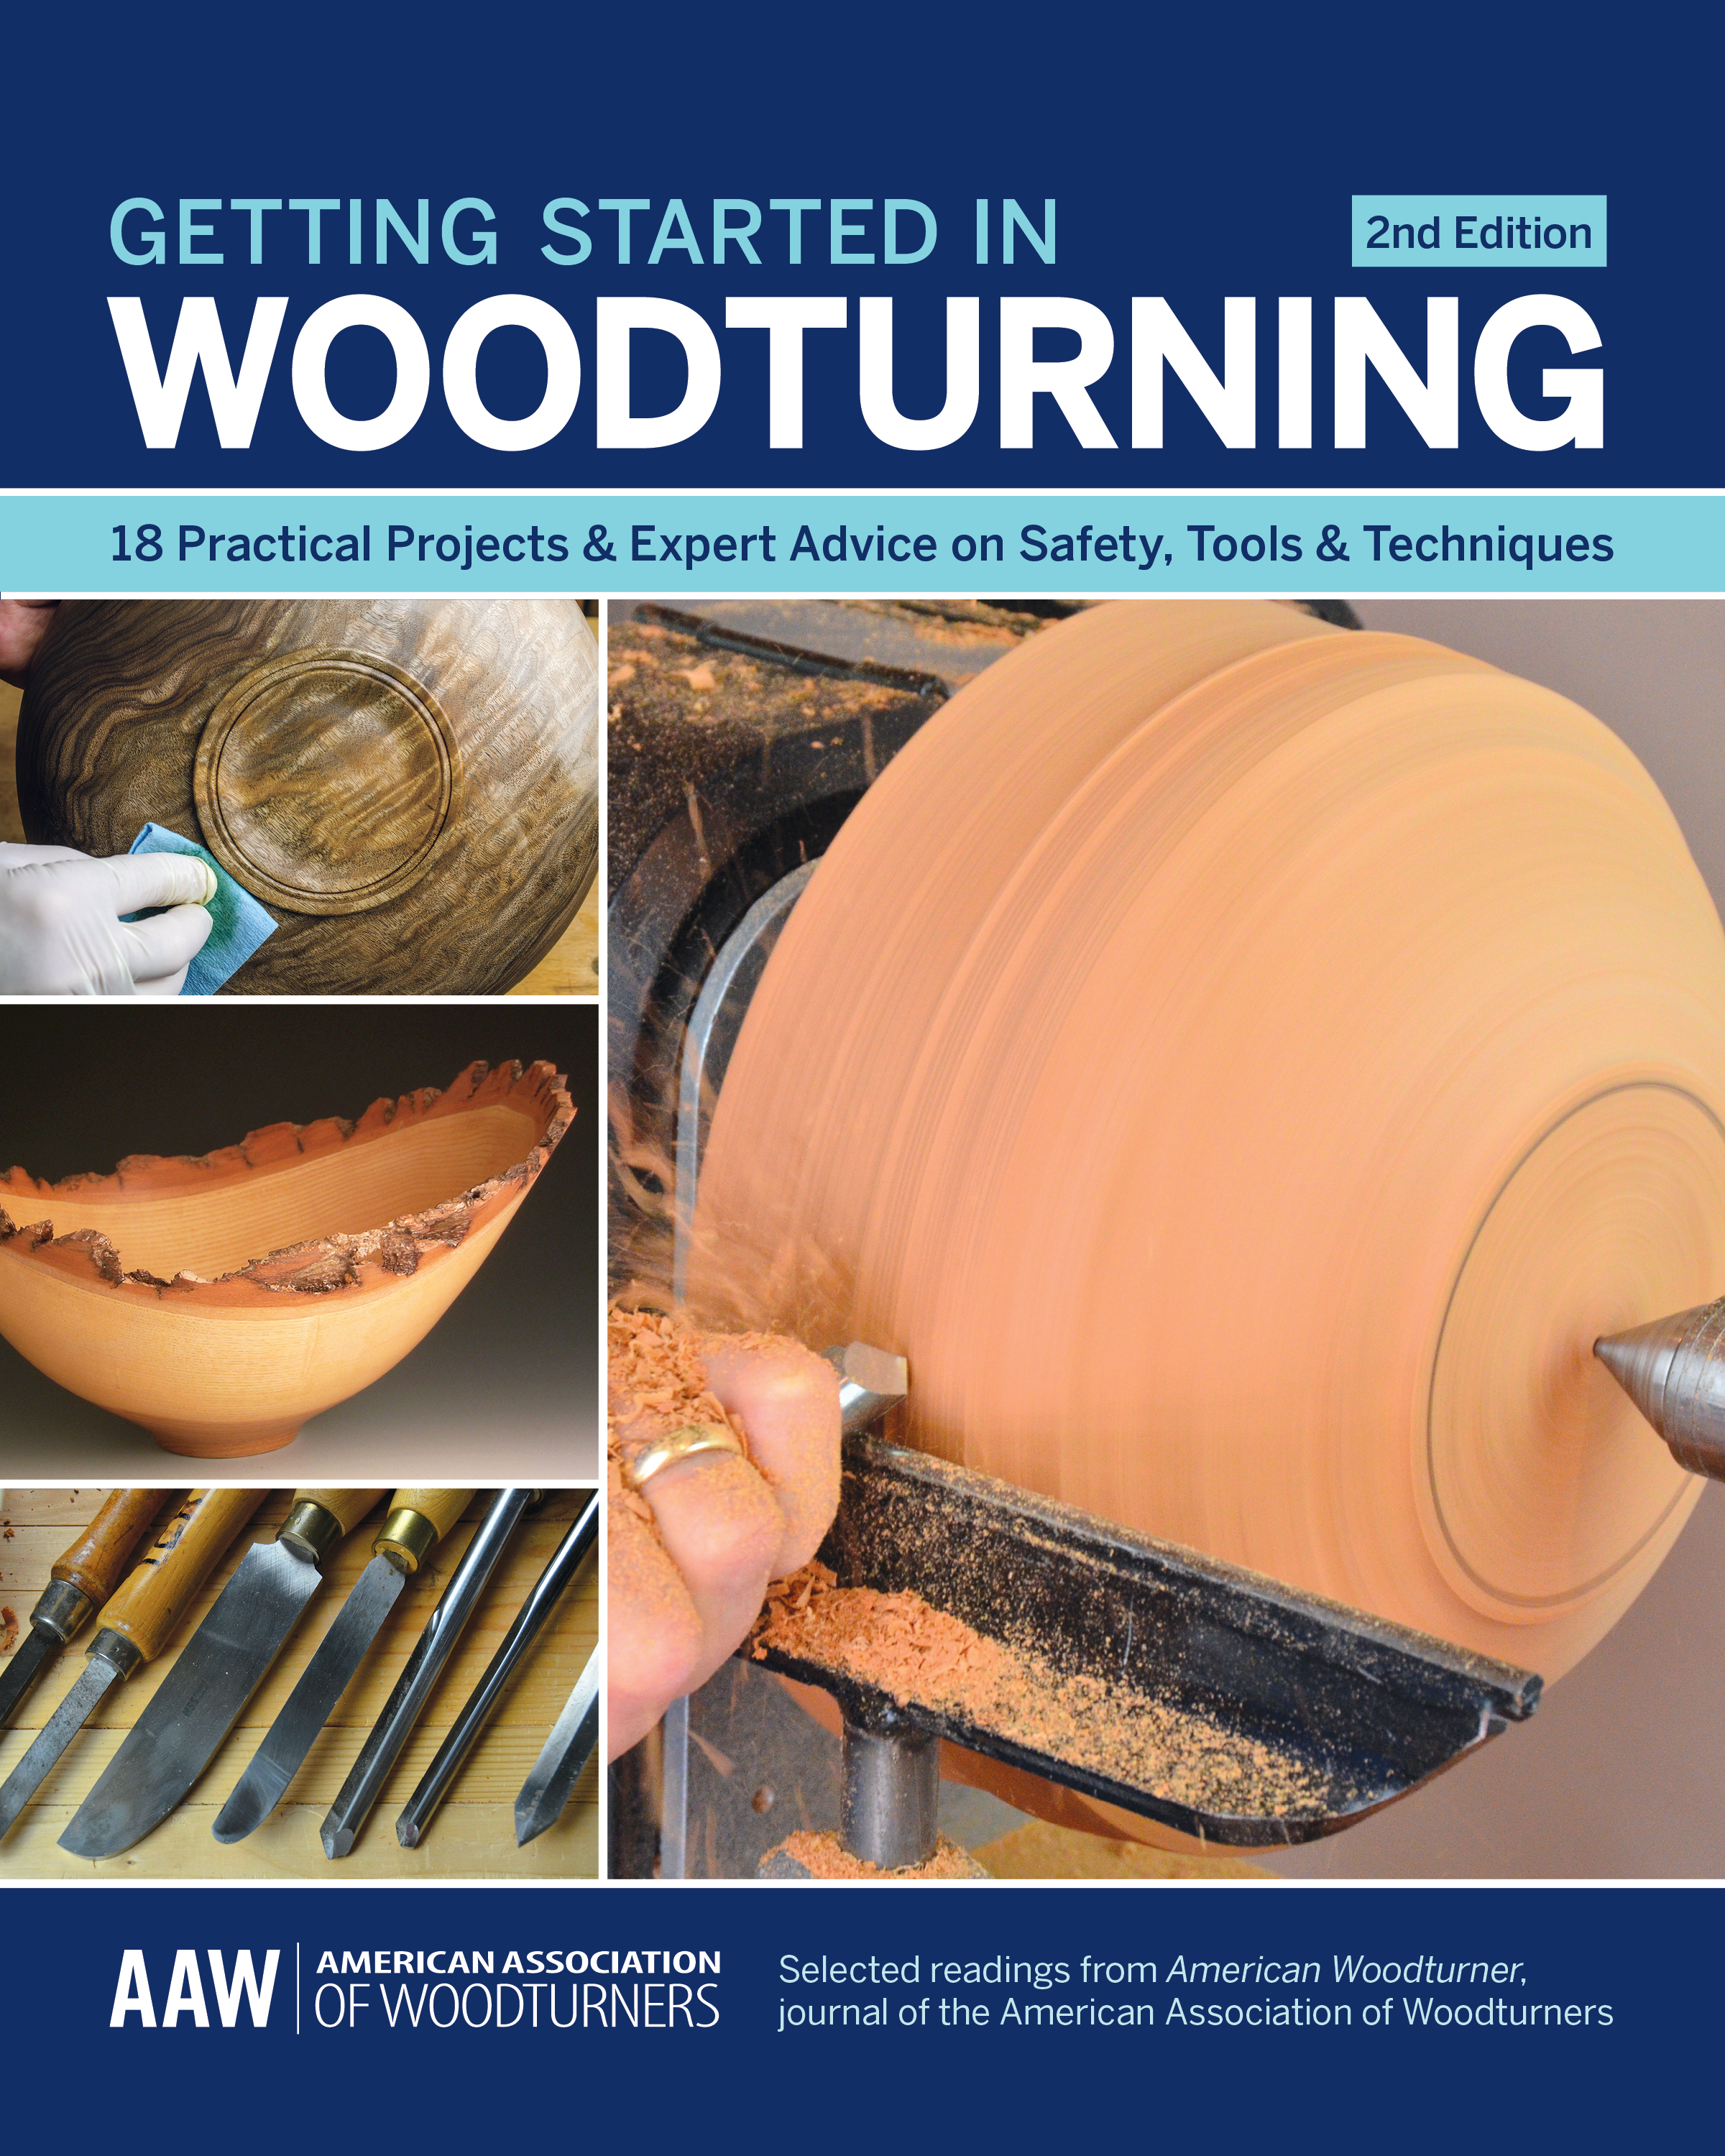 Getting Started in Woodturning 18 Practical Projects & Expert Advice on Safety, Tools & Techniques